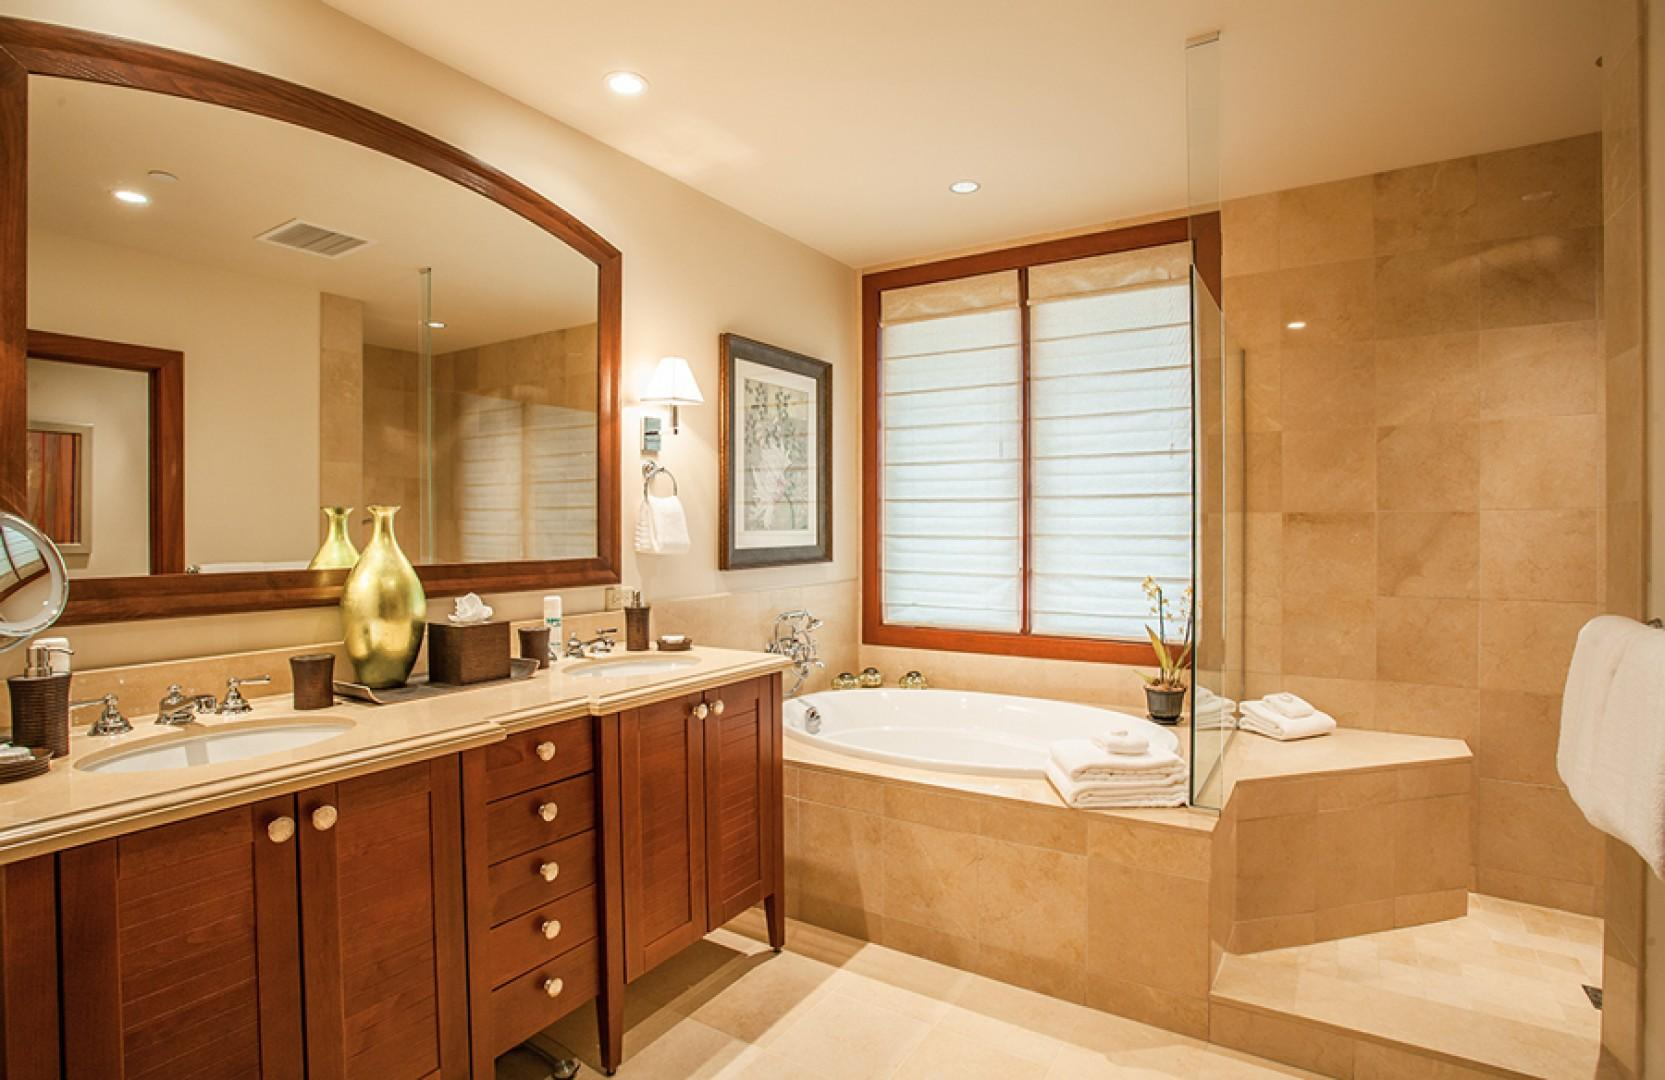 Sun Splash C301 - Second Master Bath with Deep Soaking Tub and Separate Shower, Private WC, and Walk-In Closet